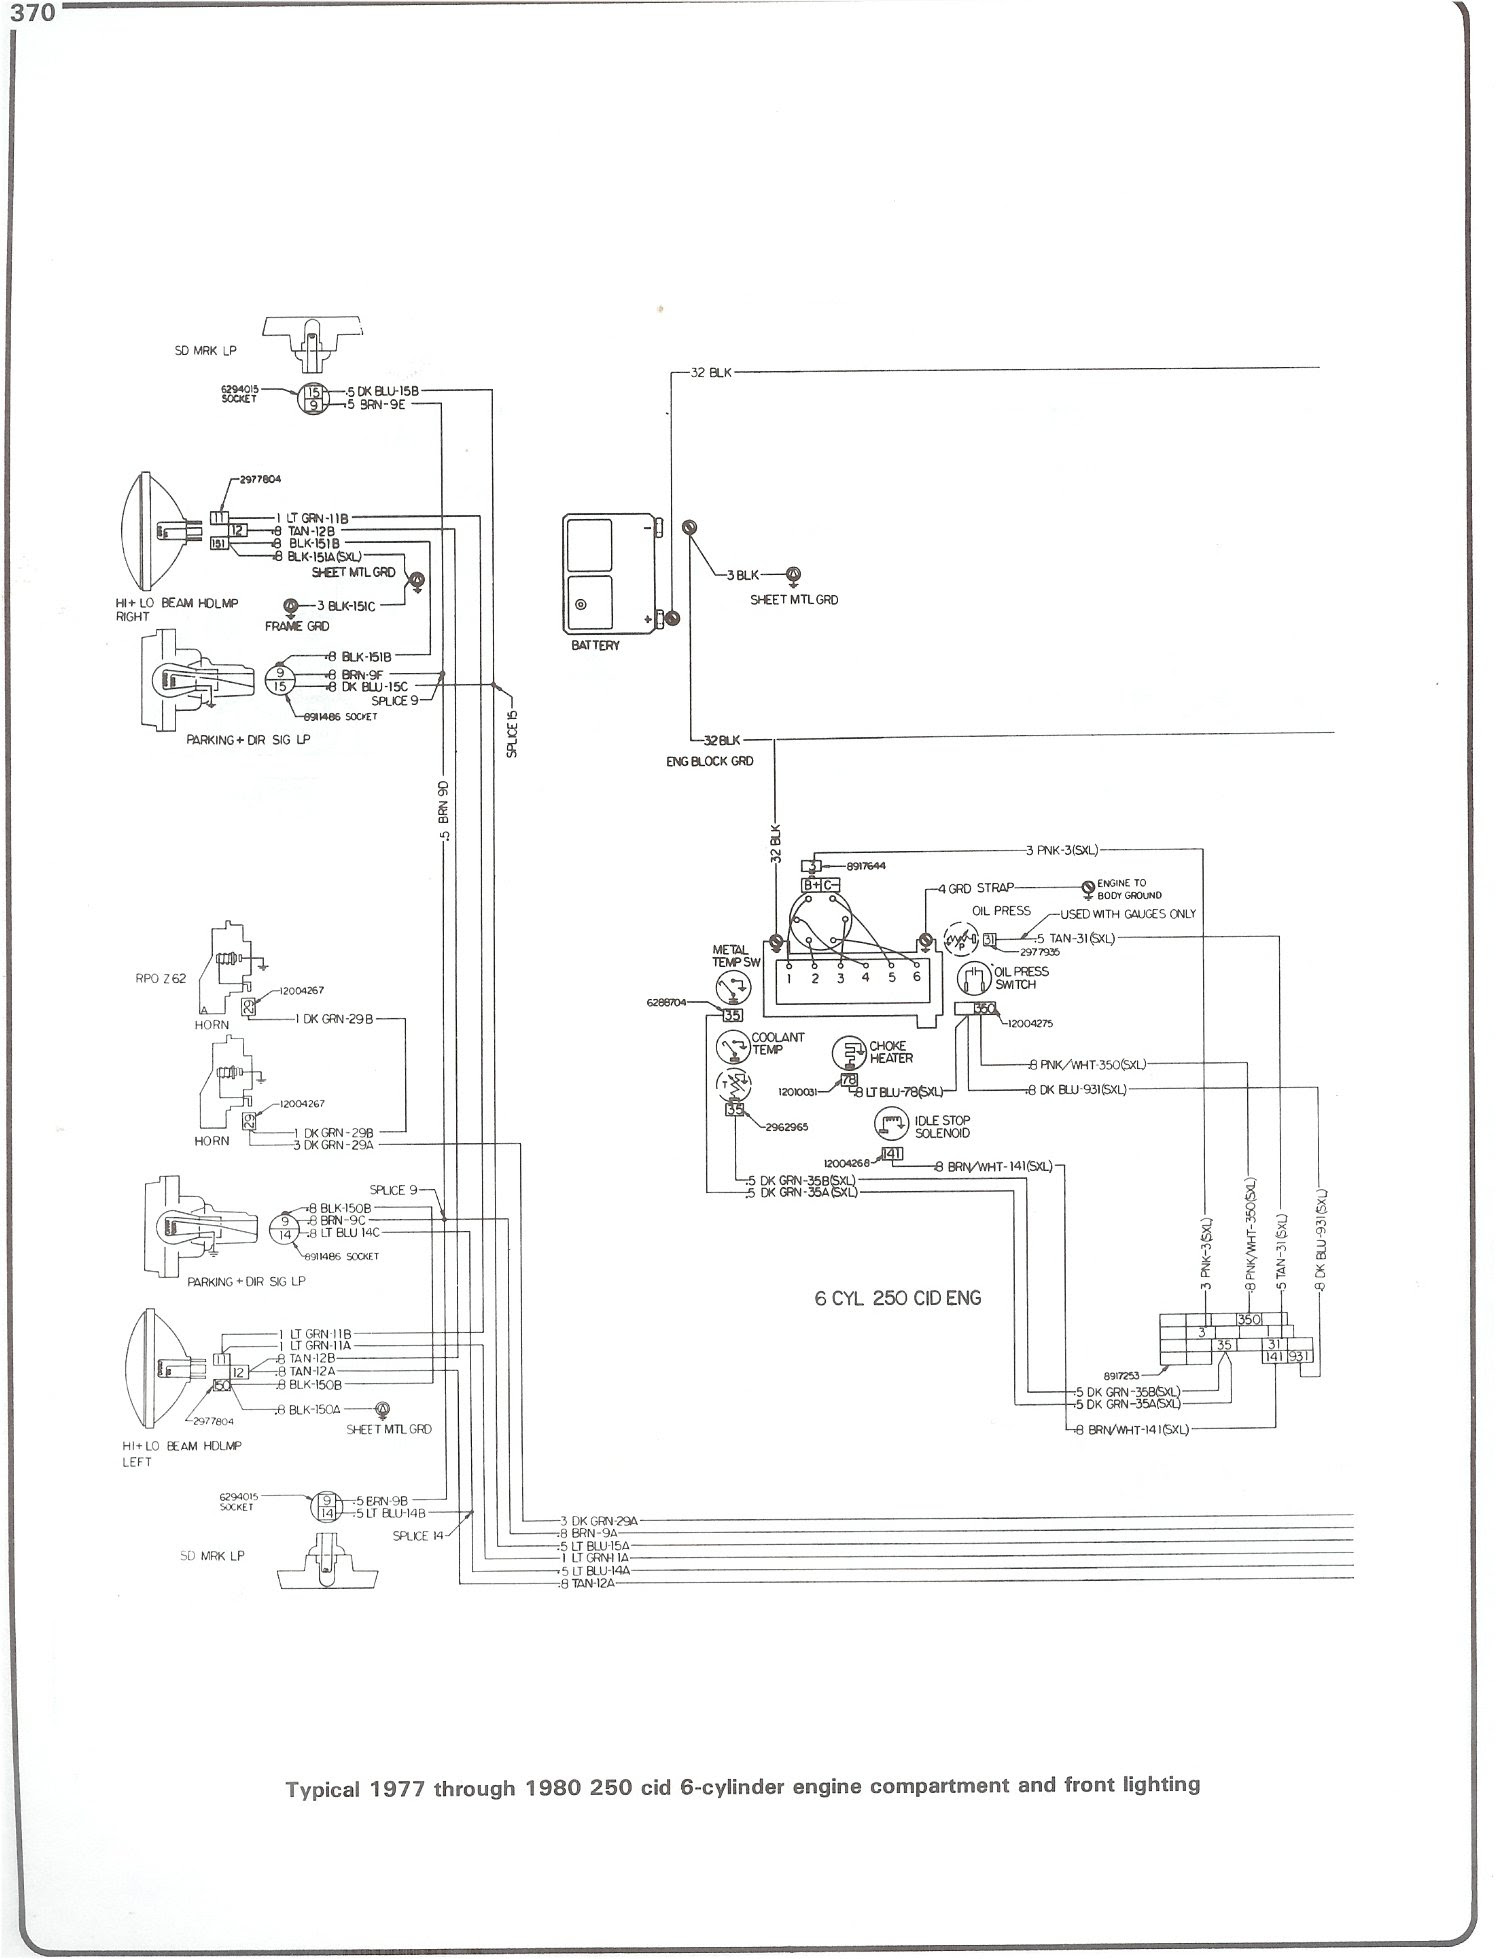 Wiring Diagram For A 1996 Ford F 350 73 Dfi Wiring Diagrams Wiring Diagram United A United A Maceratadoc It